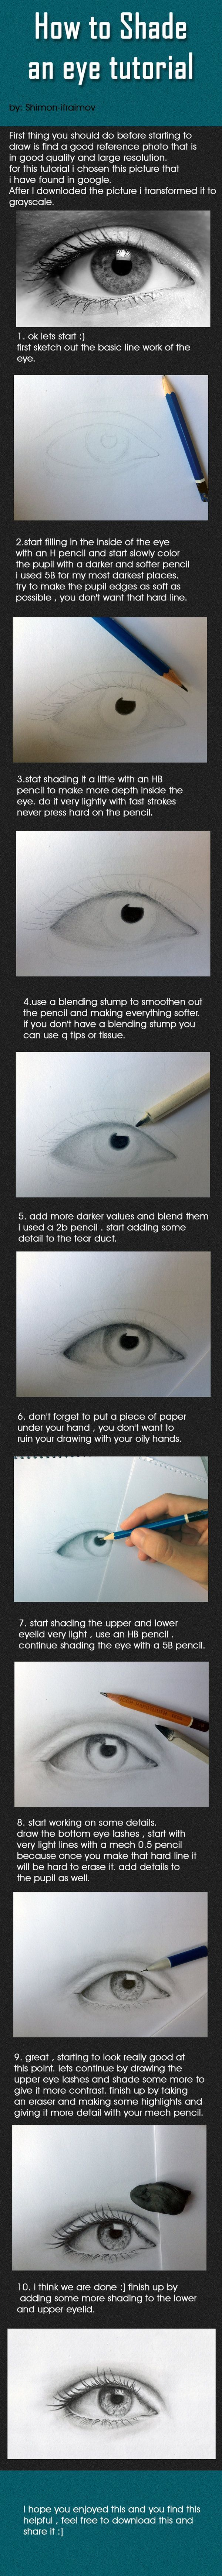 Eye Tutorial by Shimon-Ifraimov.deviantart.com on @deviantART: